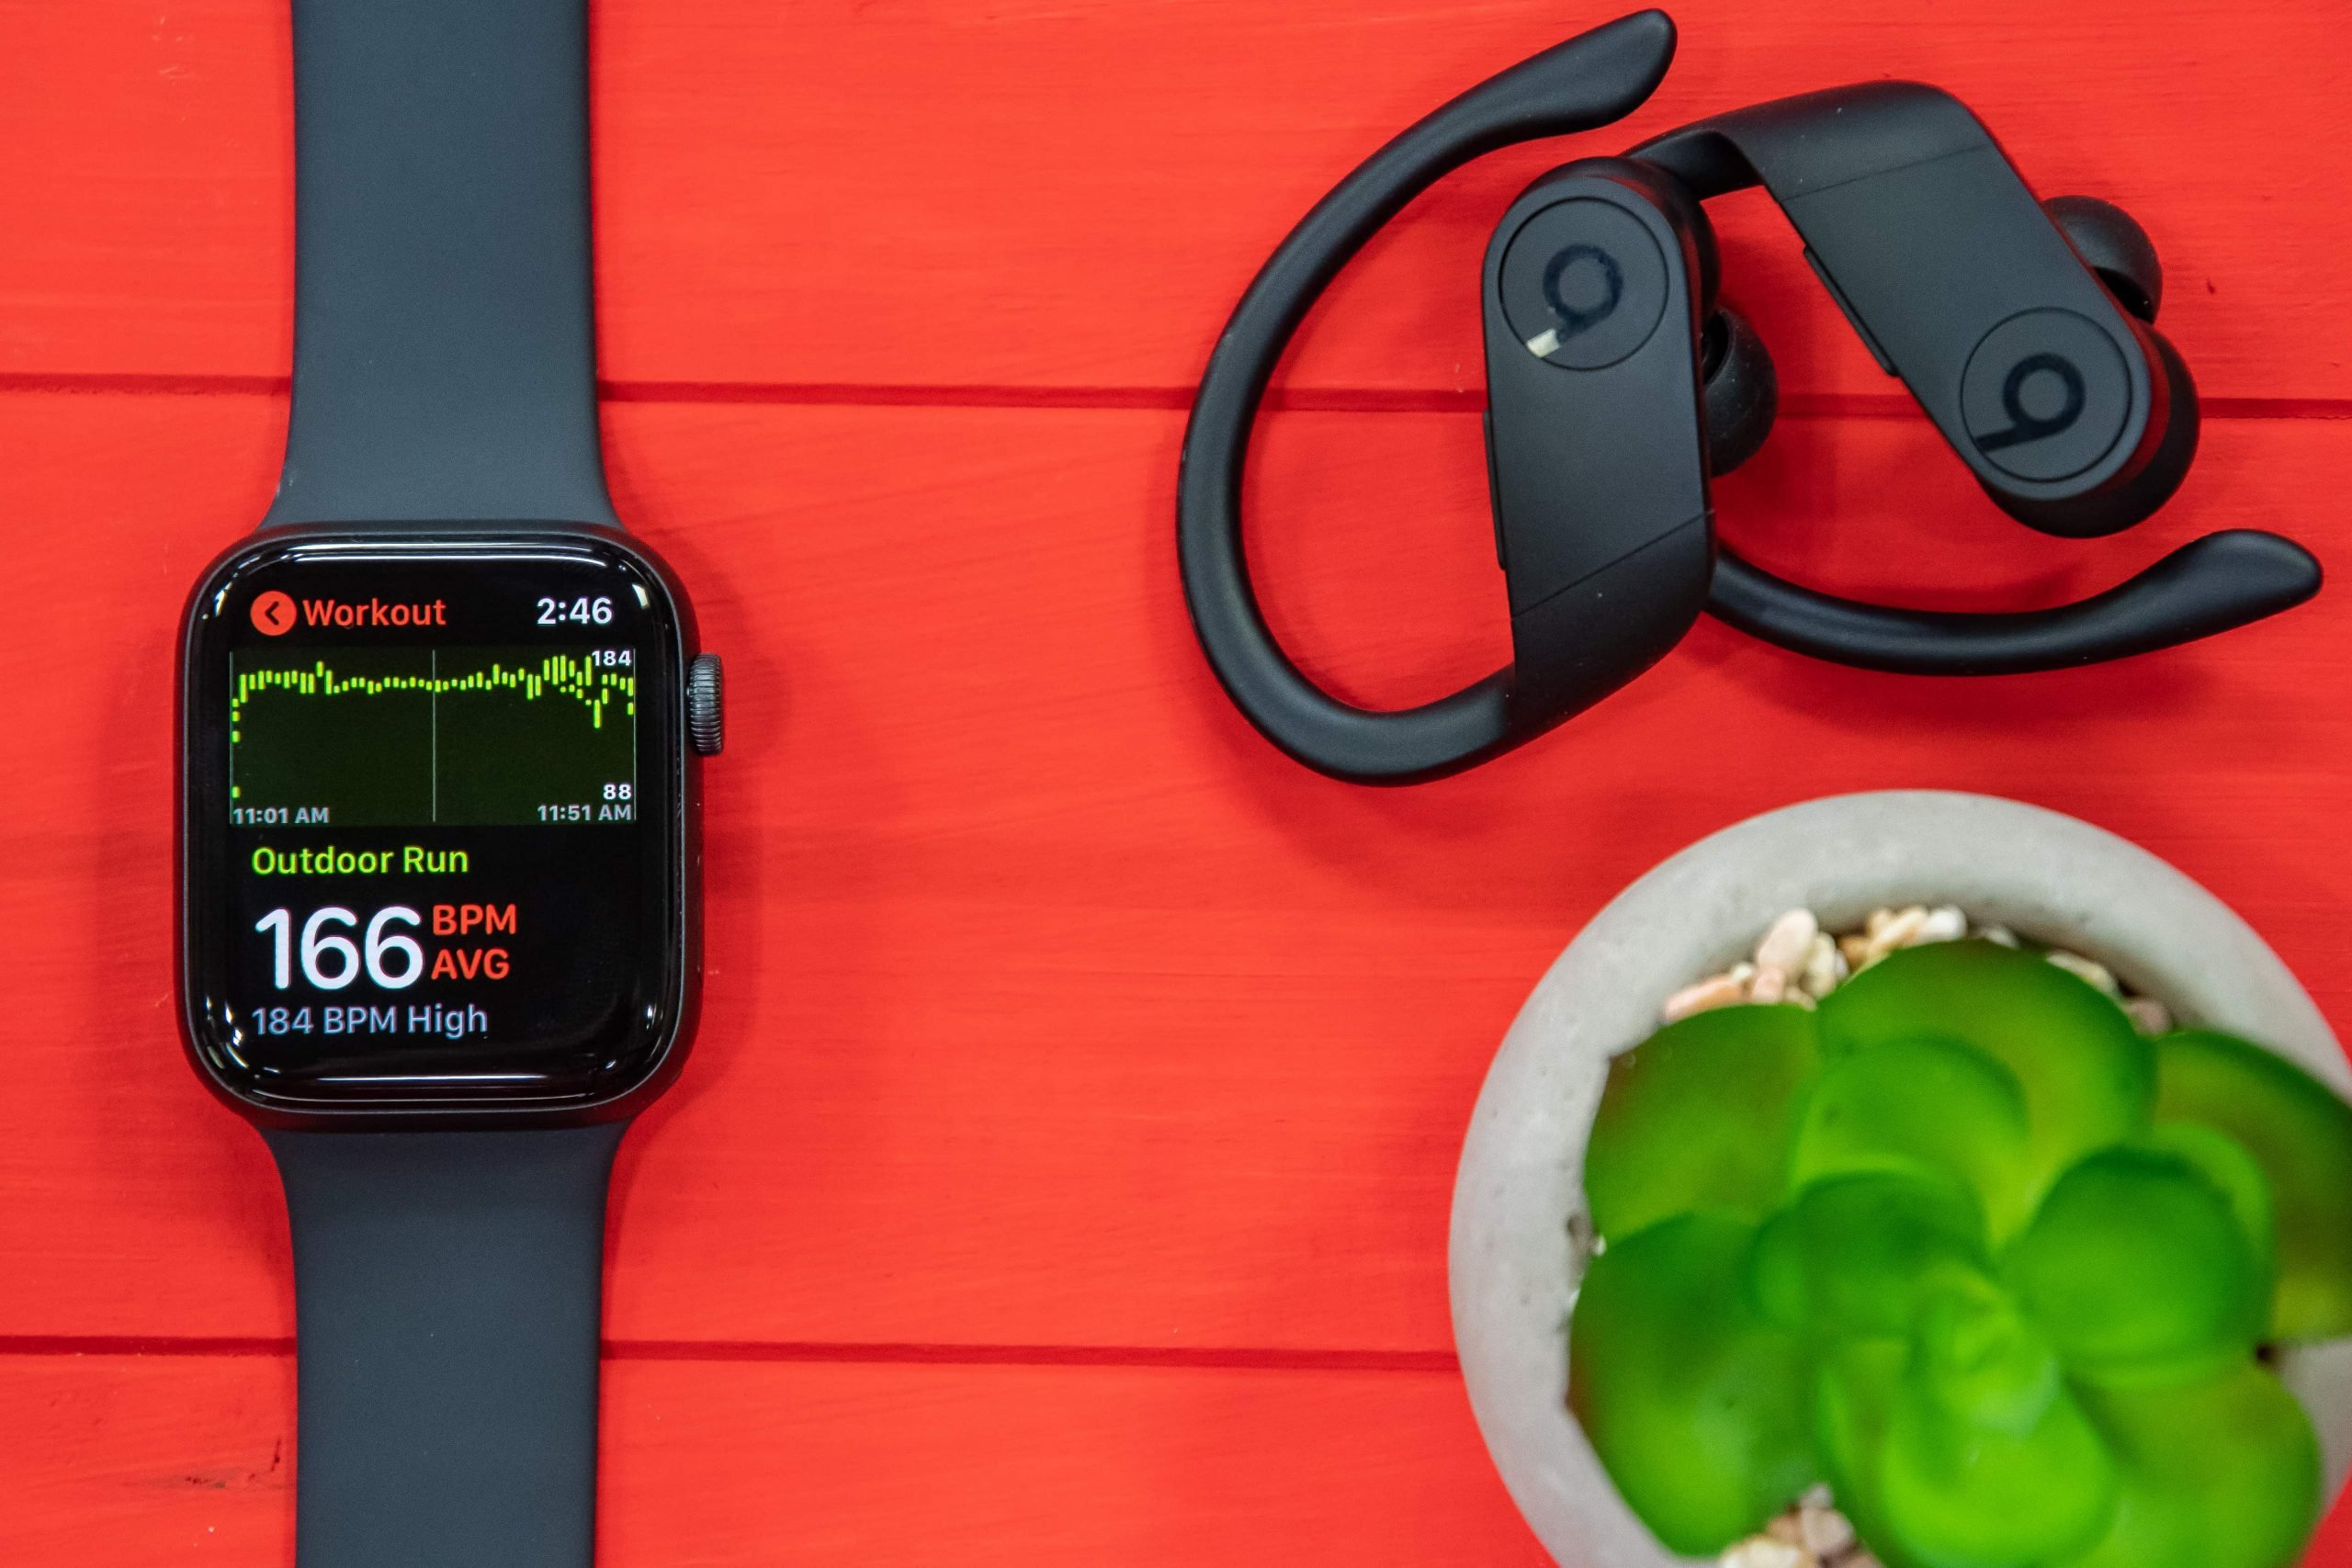 How to Restore Beta Watch OS 2 to the Apple Watch